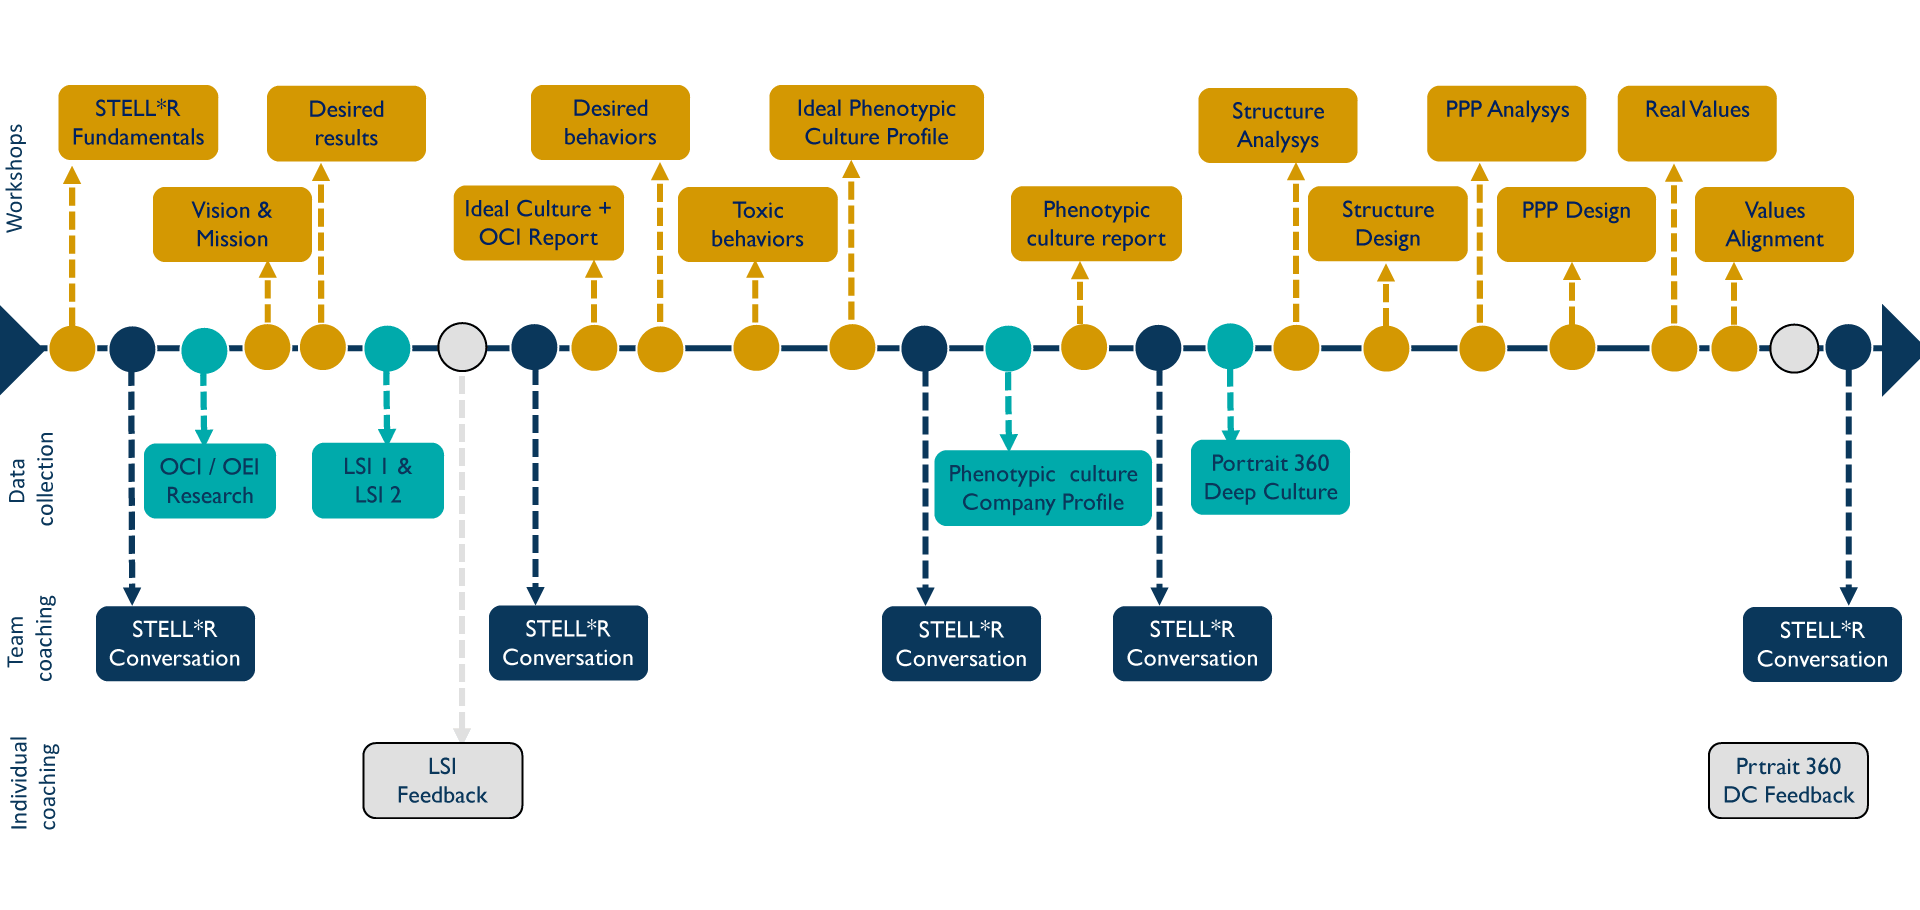 Stell*R activation kit rollout map